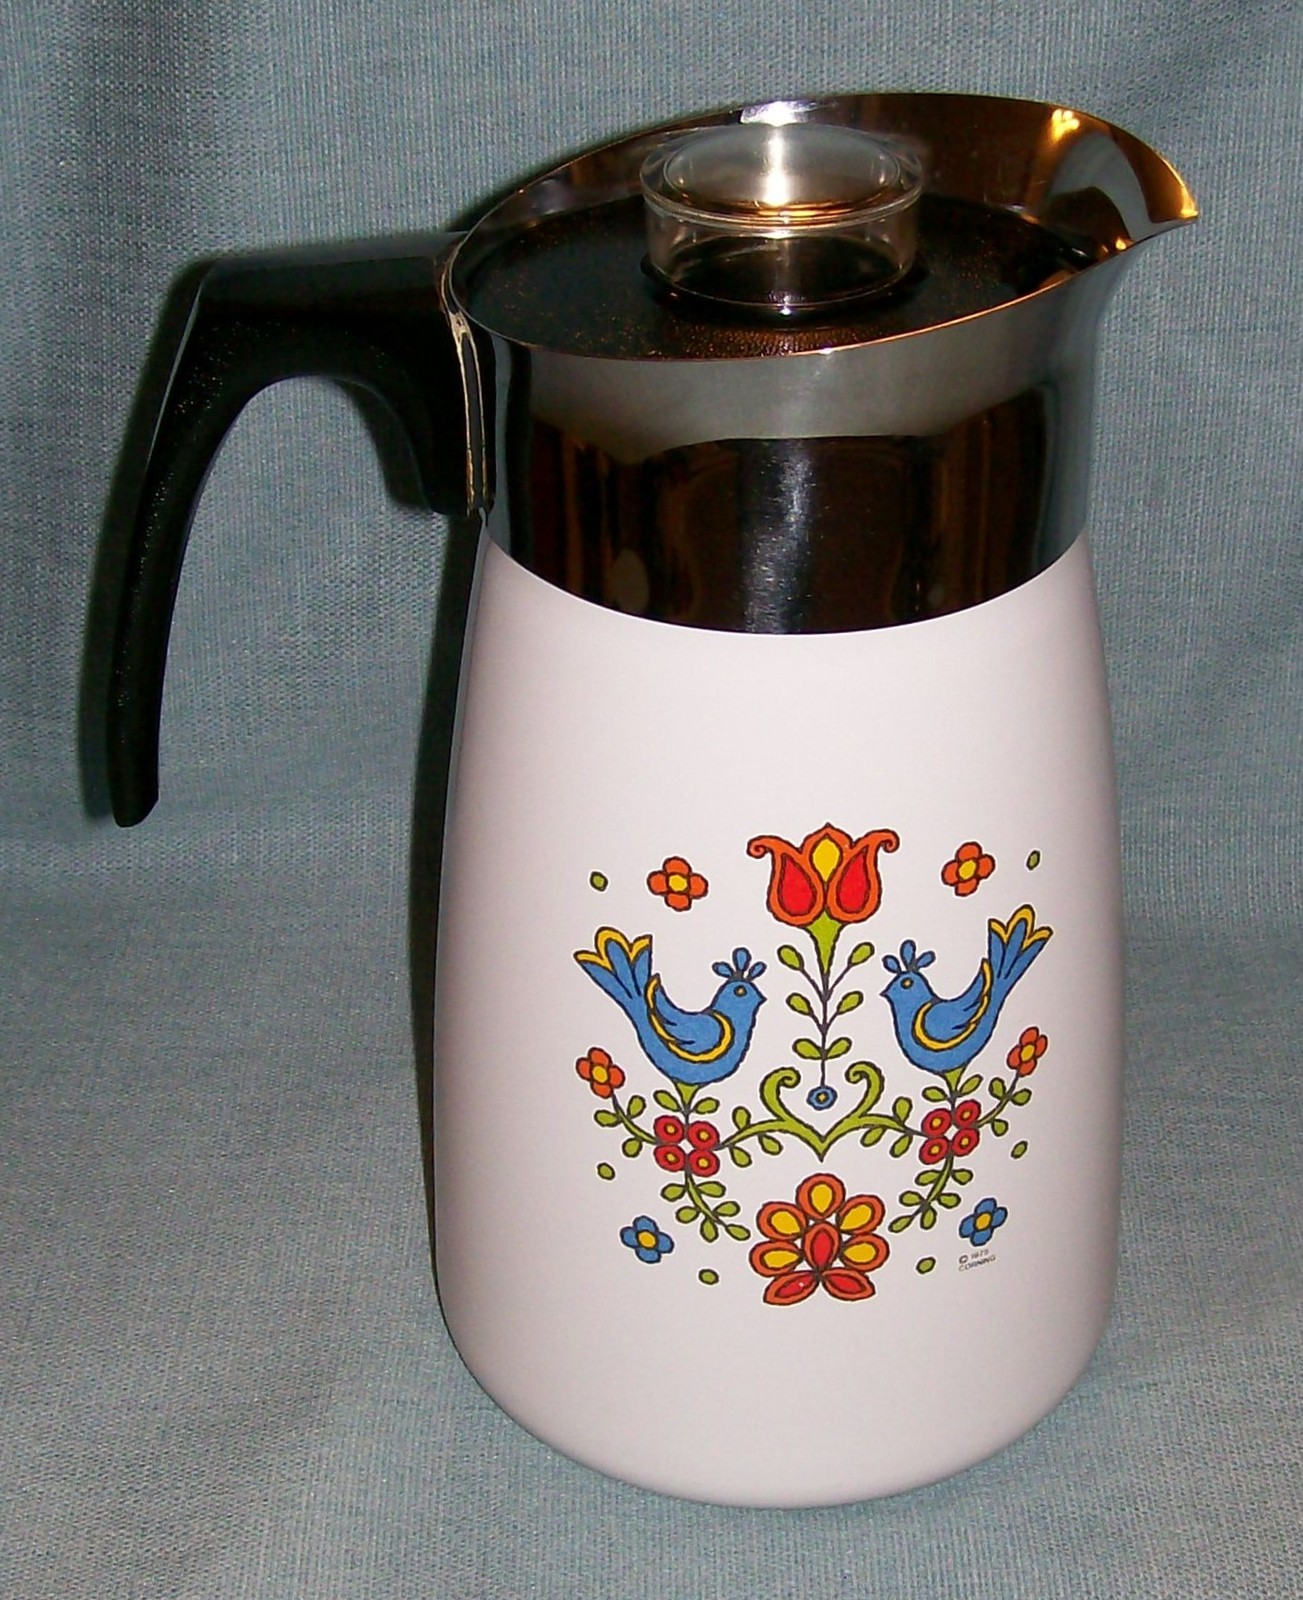 Vtg Corning COUNTRY FESTIVAL Friendship Stove Top 10 Cup Percolator P149 Birds image 4